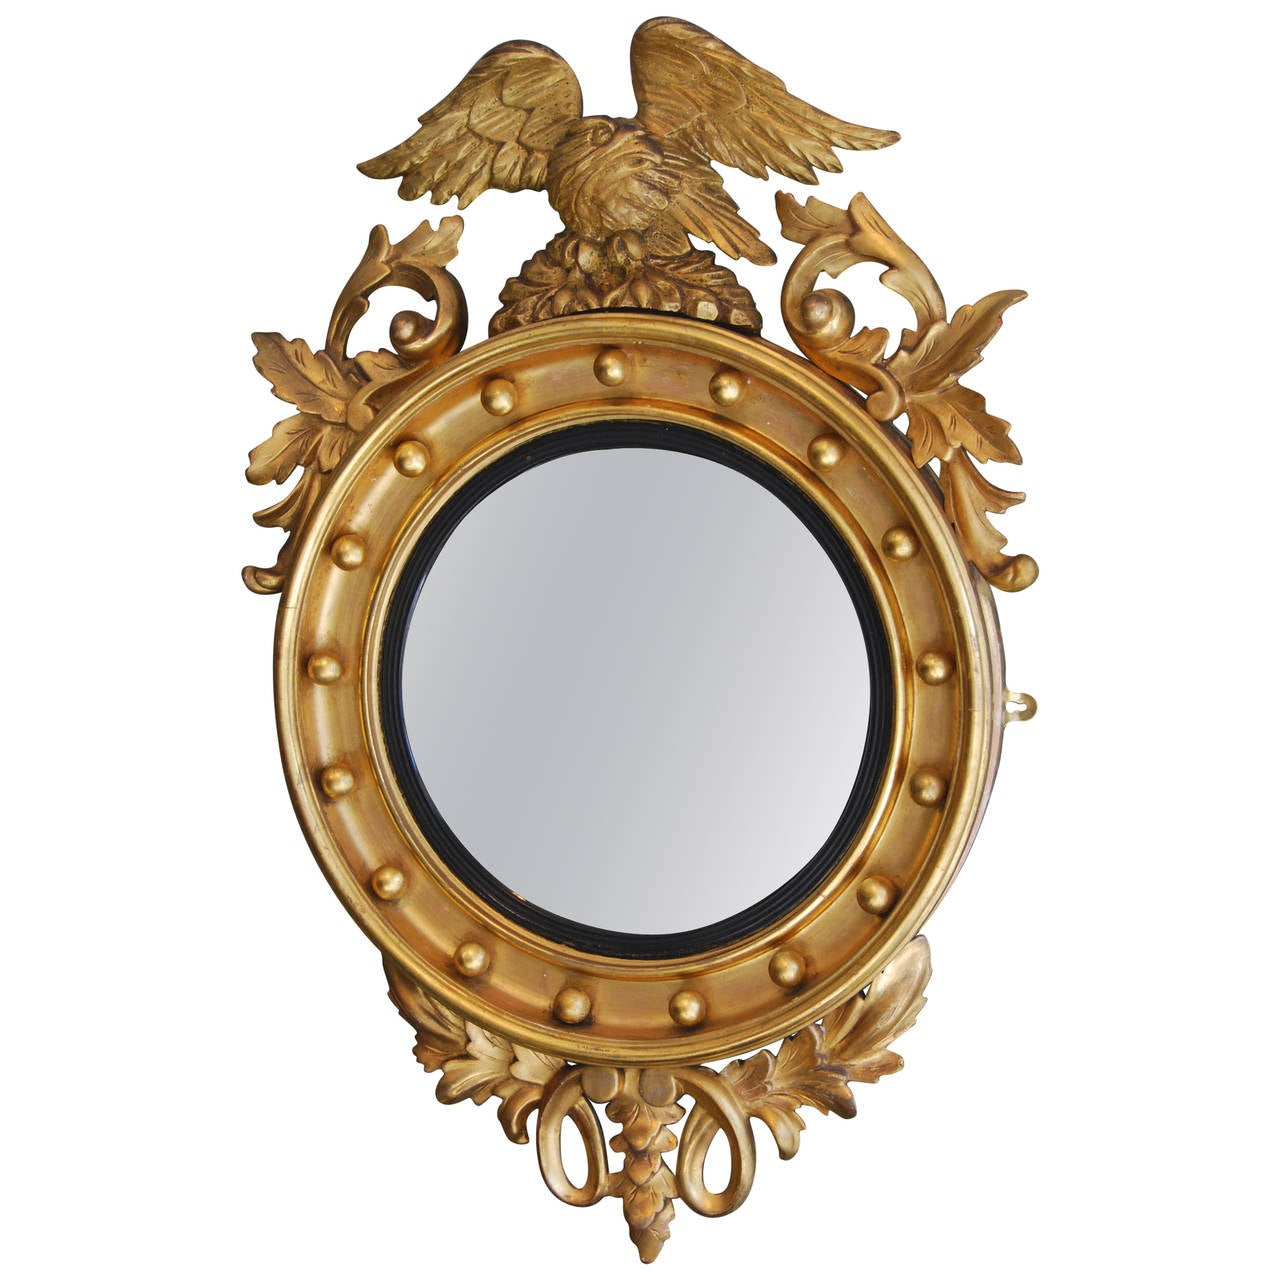 Regency convex gilt mirror at 1stdibs for Convex mirror